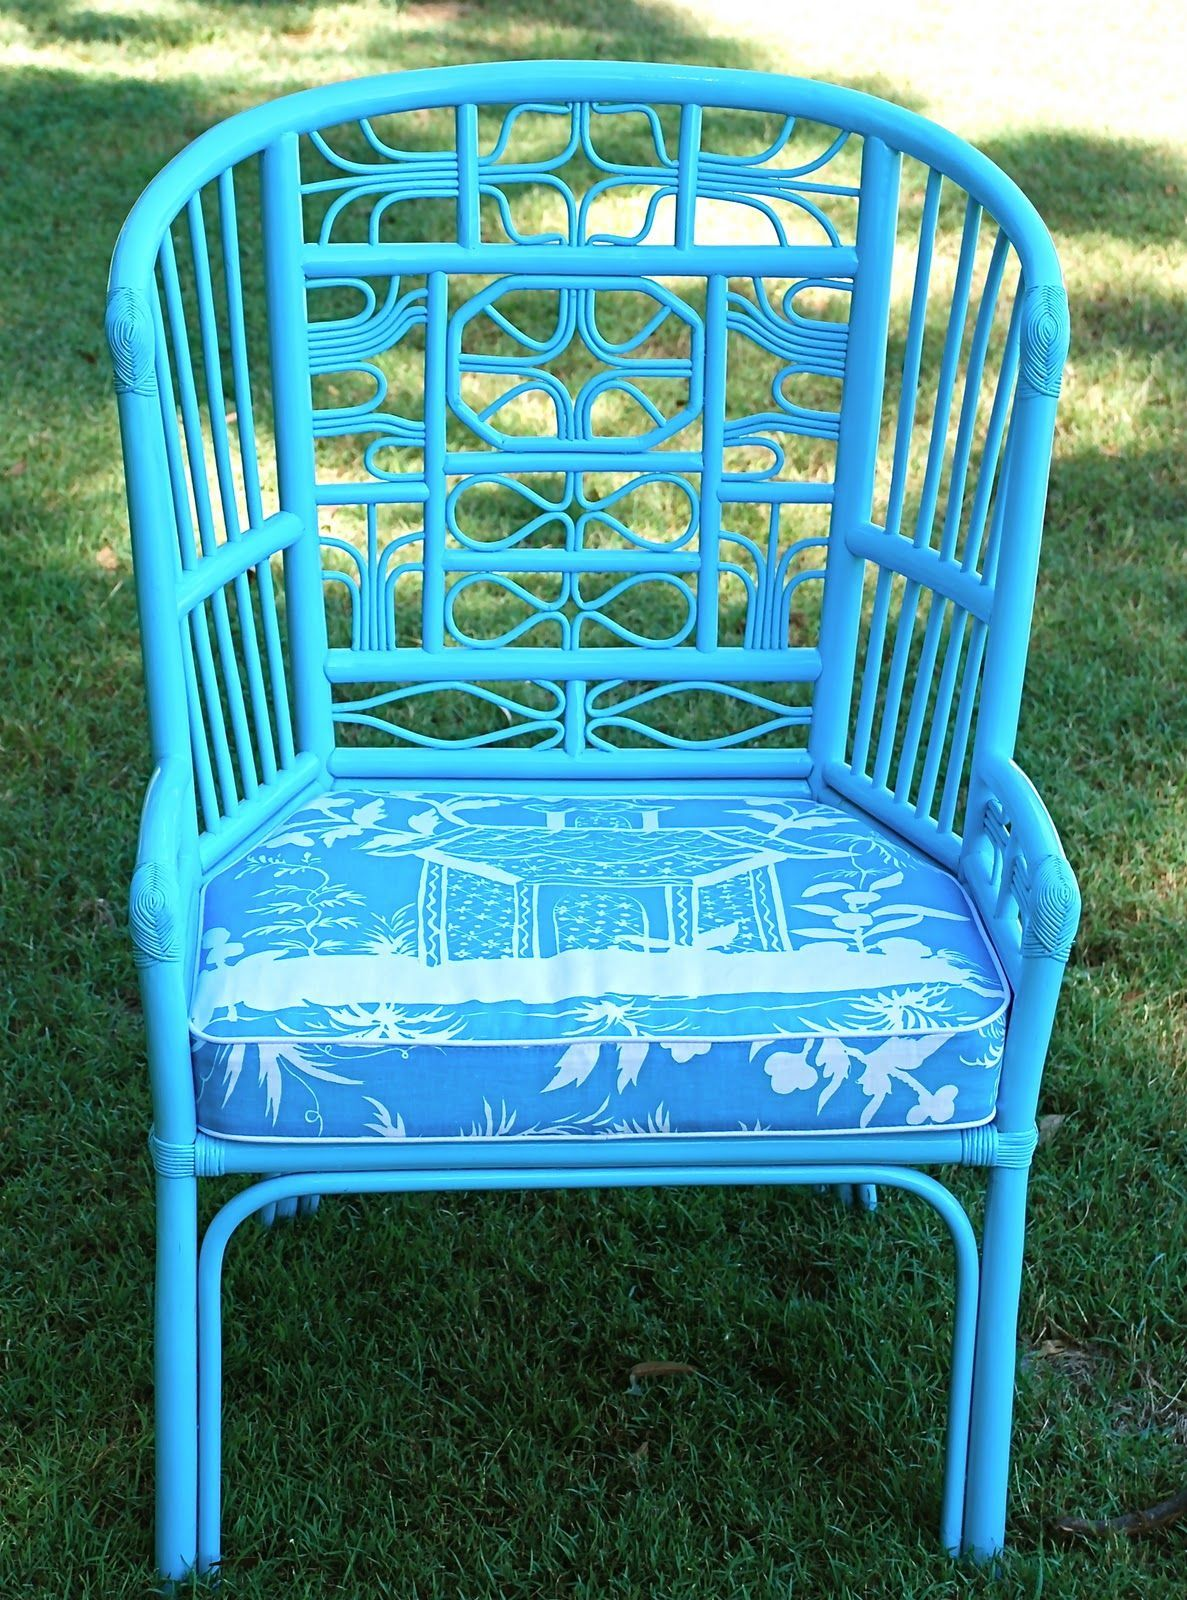 10 fascinating ideas wicker tray book wicker furniture - Rattan living room furniture for sale ...